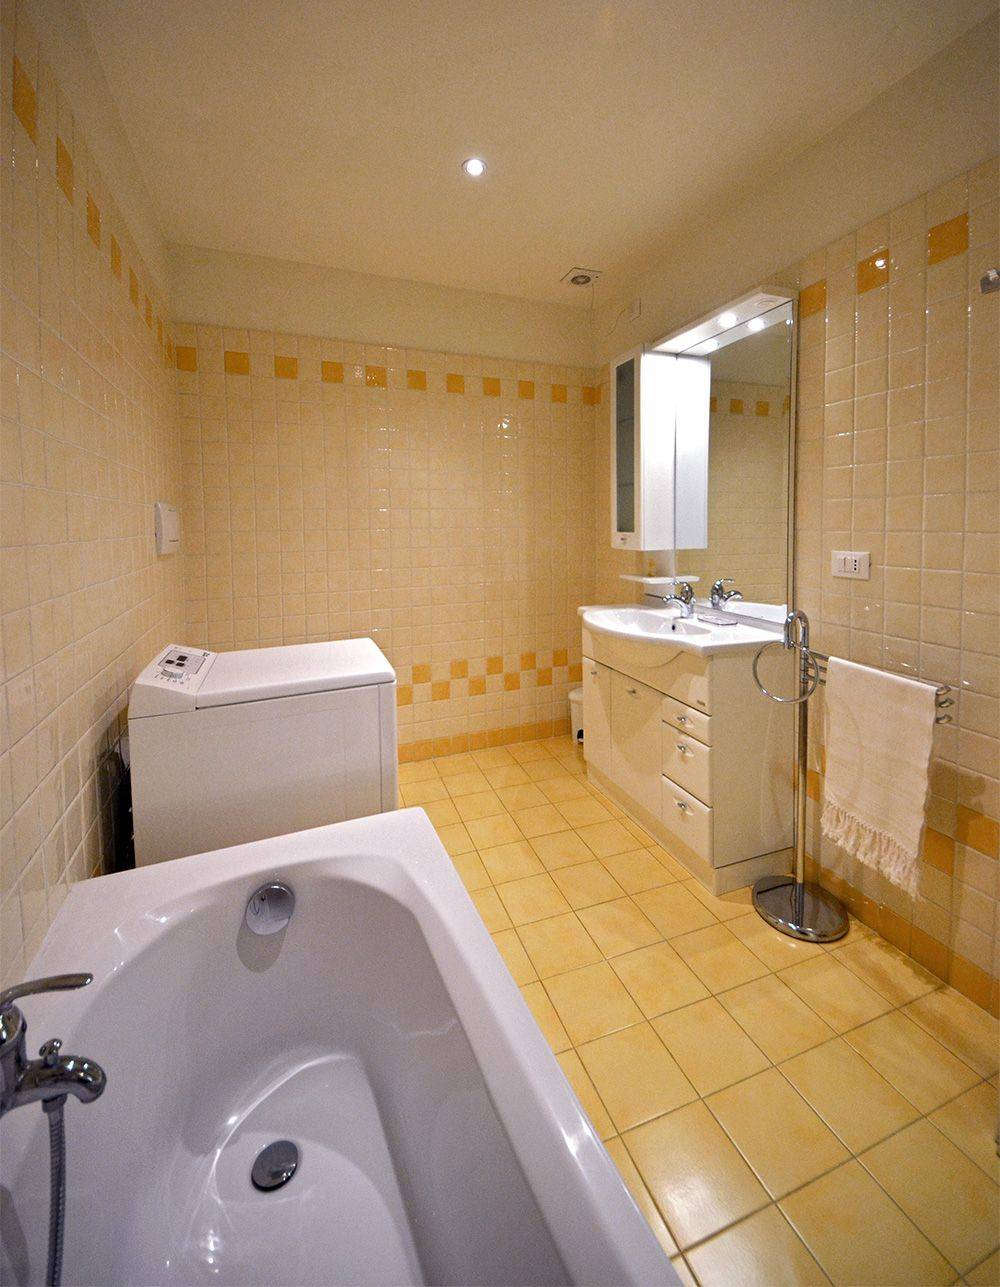 spacious bathroom 2, with bathtub and washing machine